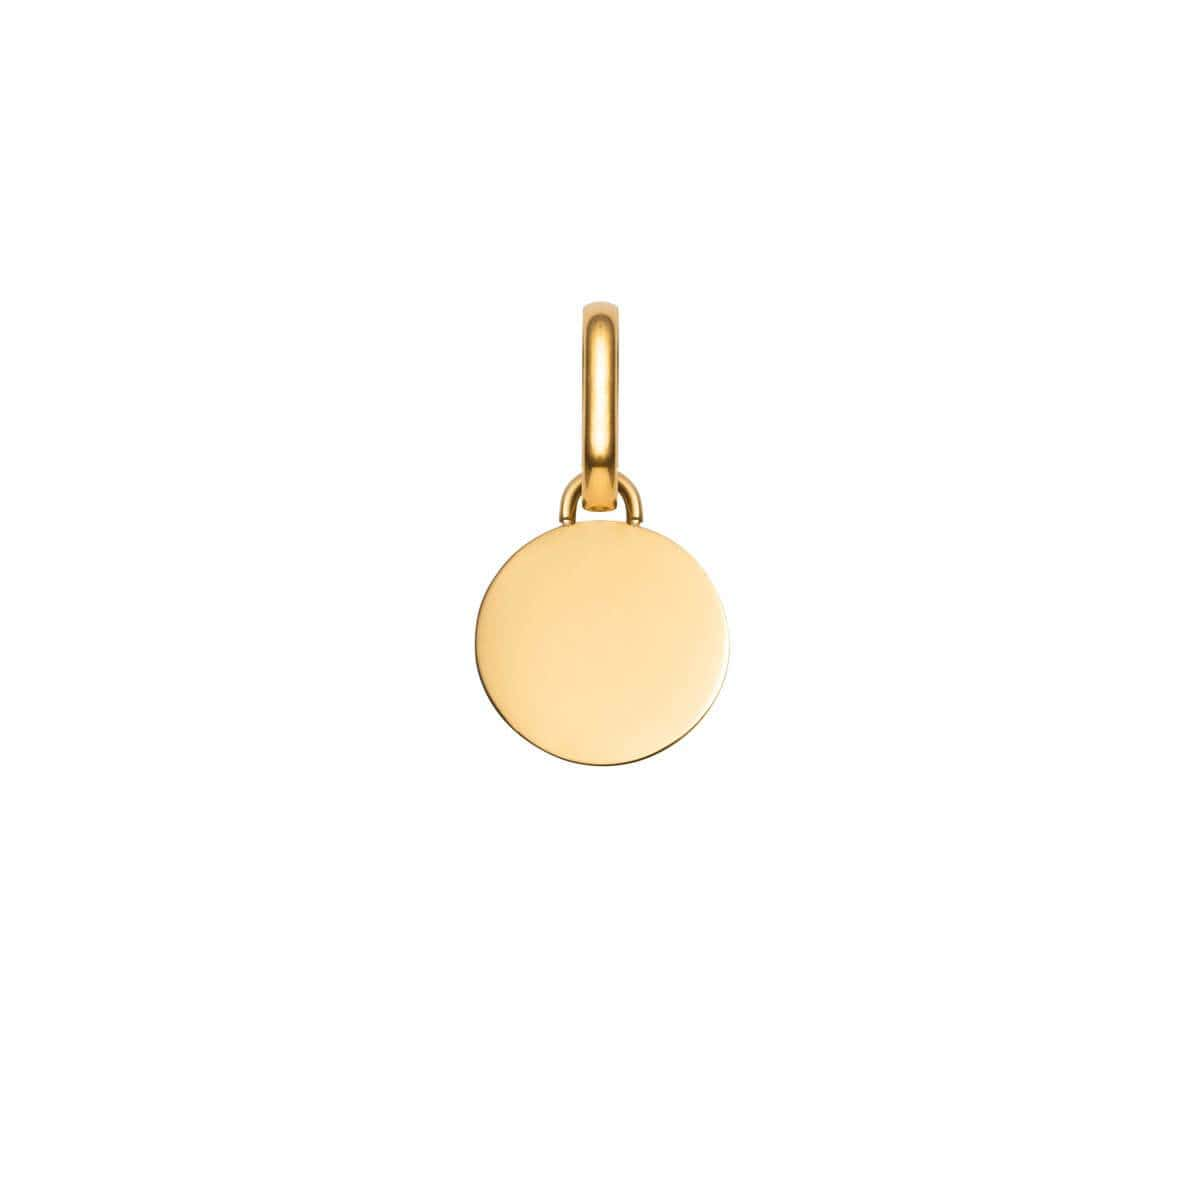 Selected Circular Pendant (Gold)